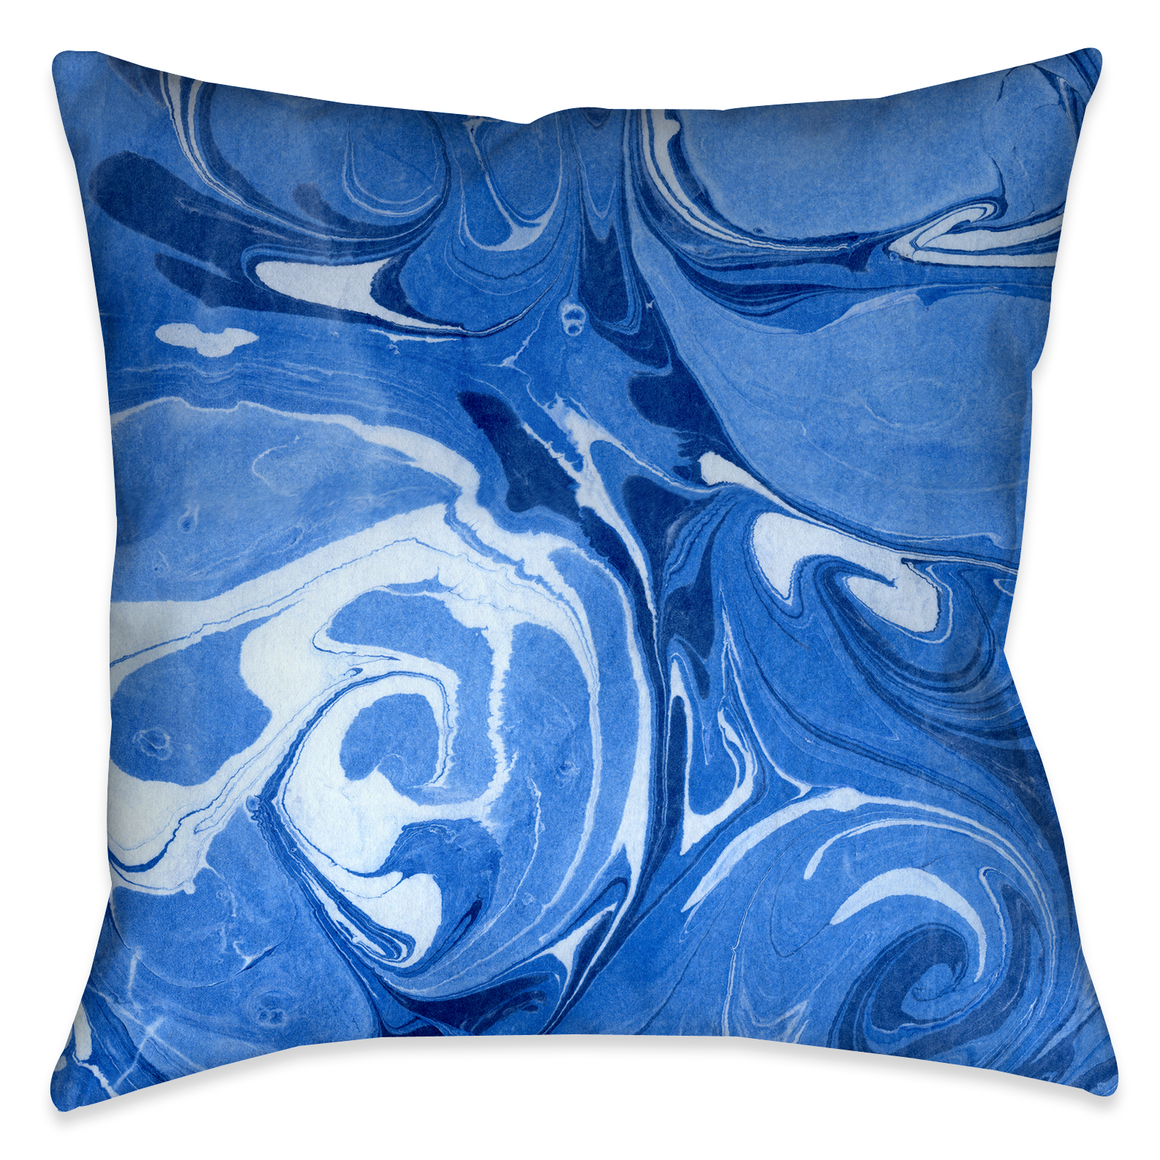 Ocean Blue II Marble Decorative Pillow